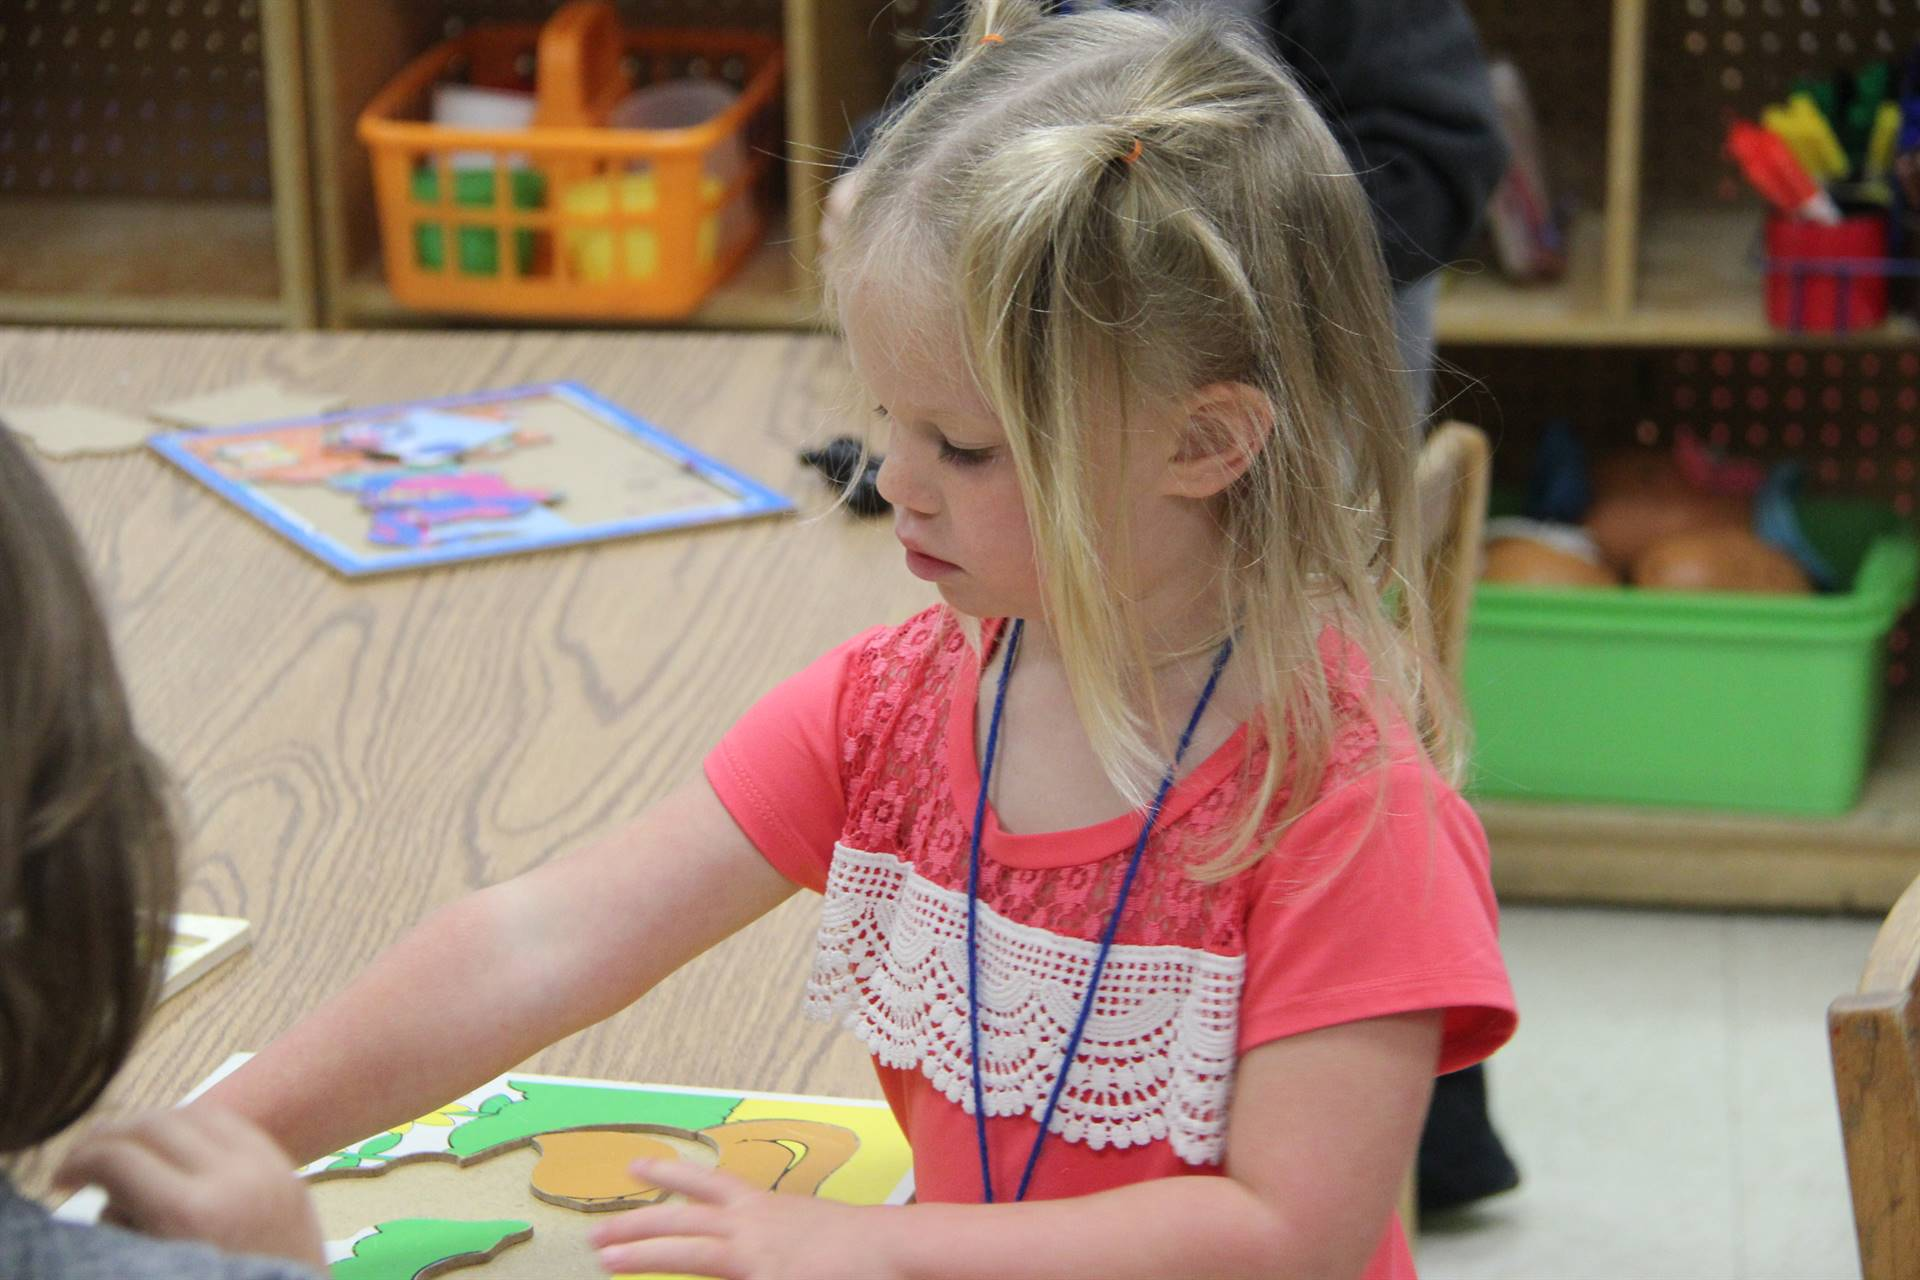 pre k student works on puzzle